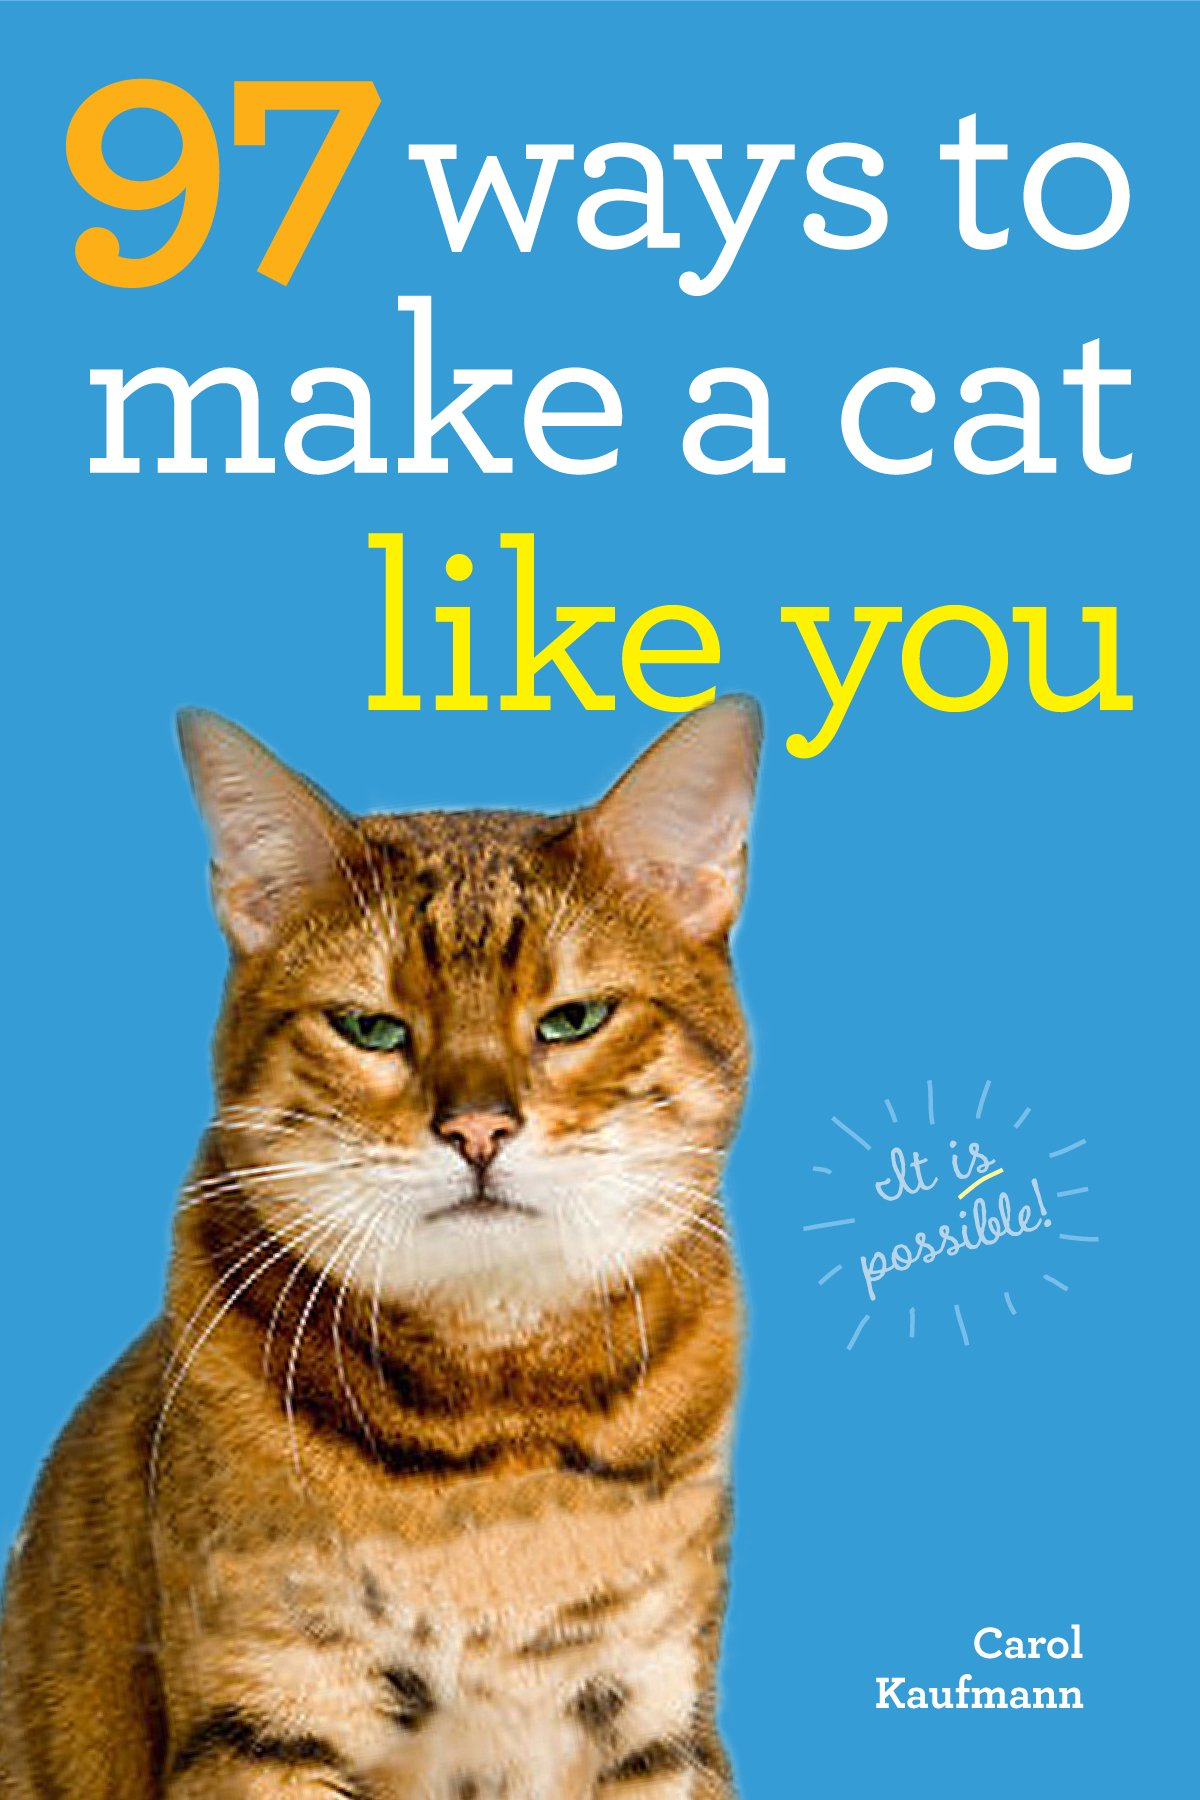 97 Ways to Make a Cat Like You Carol Kaufmann